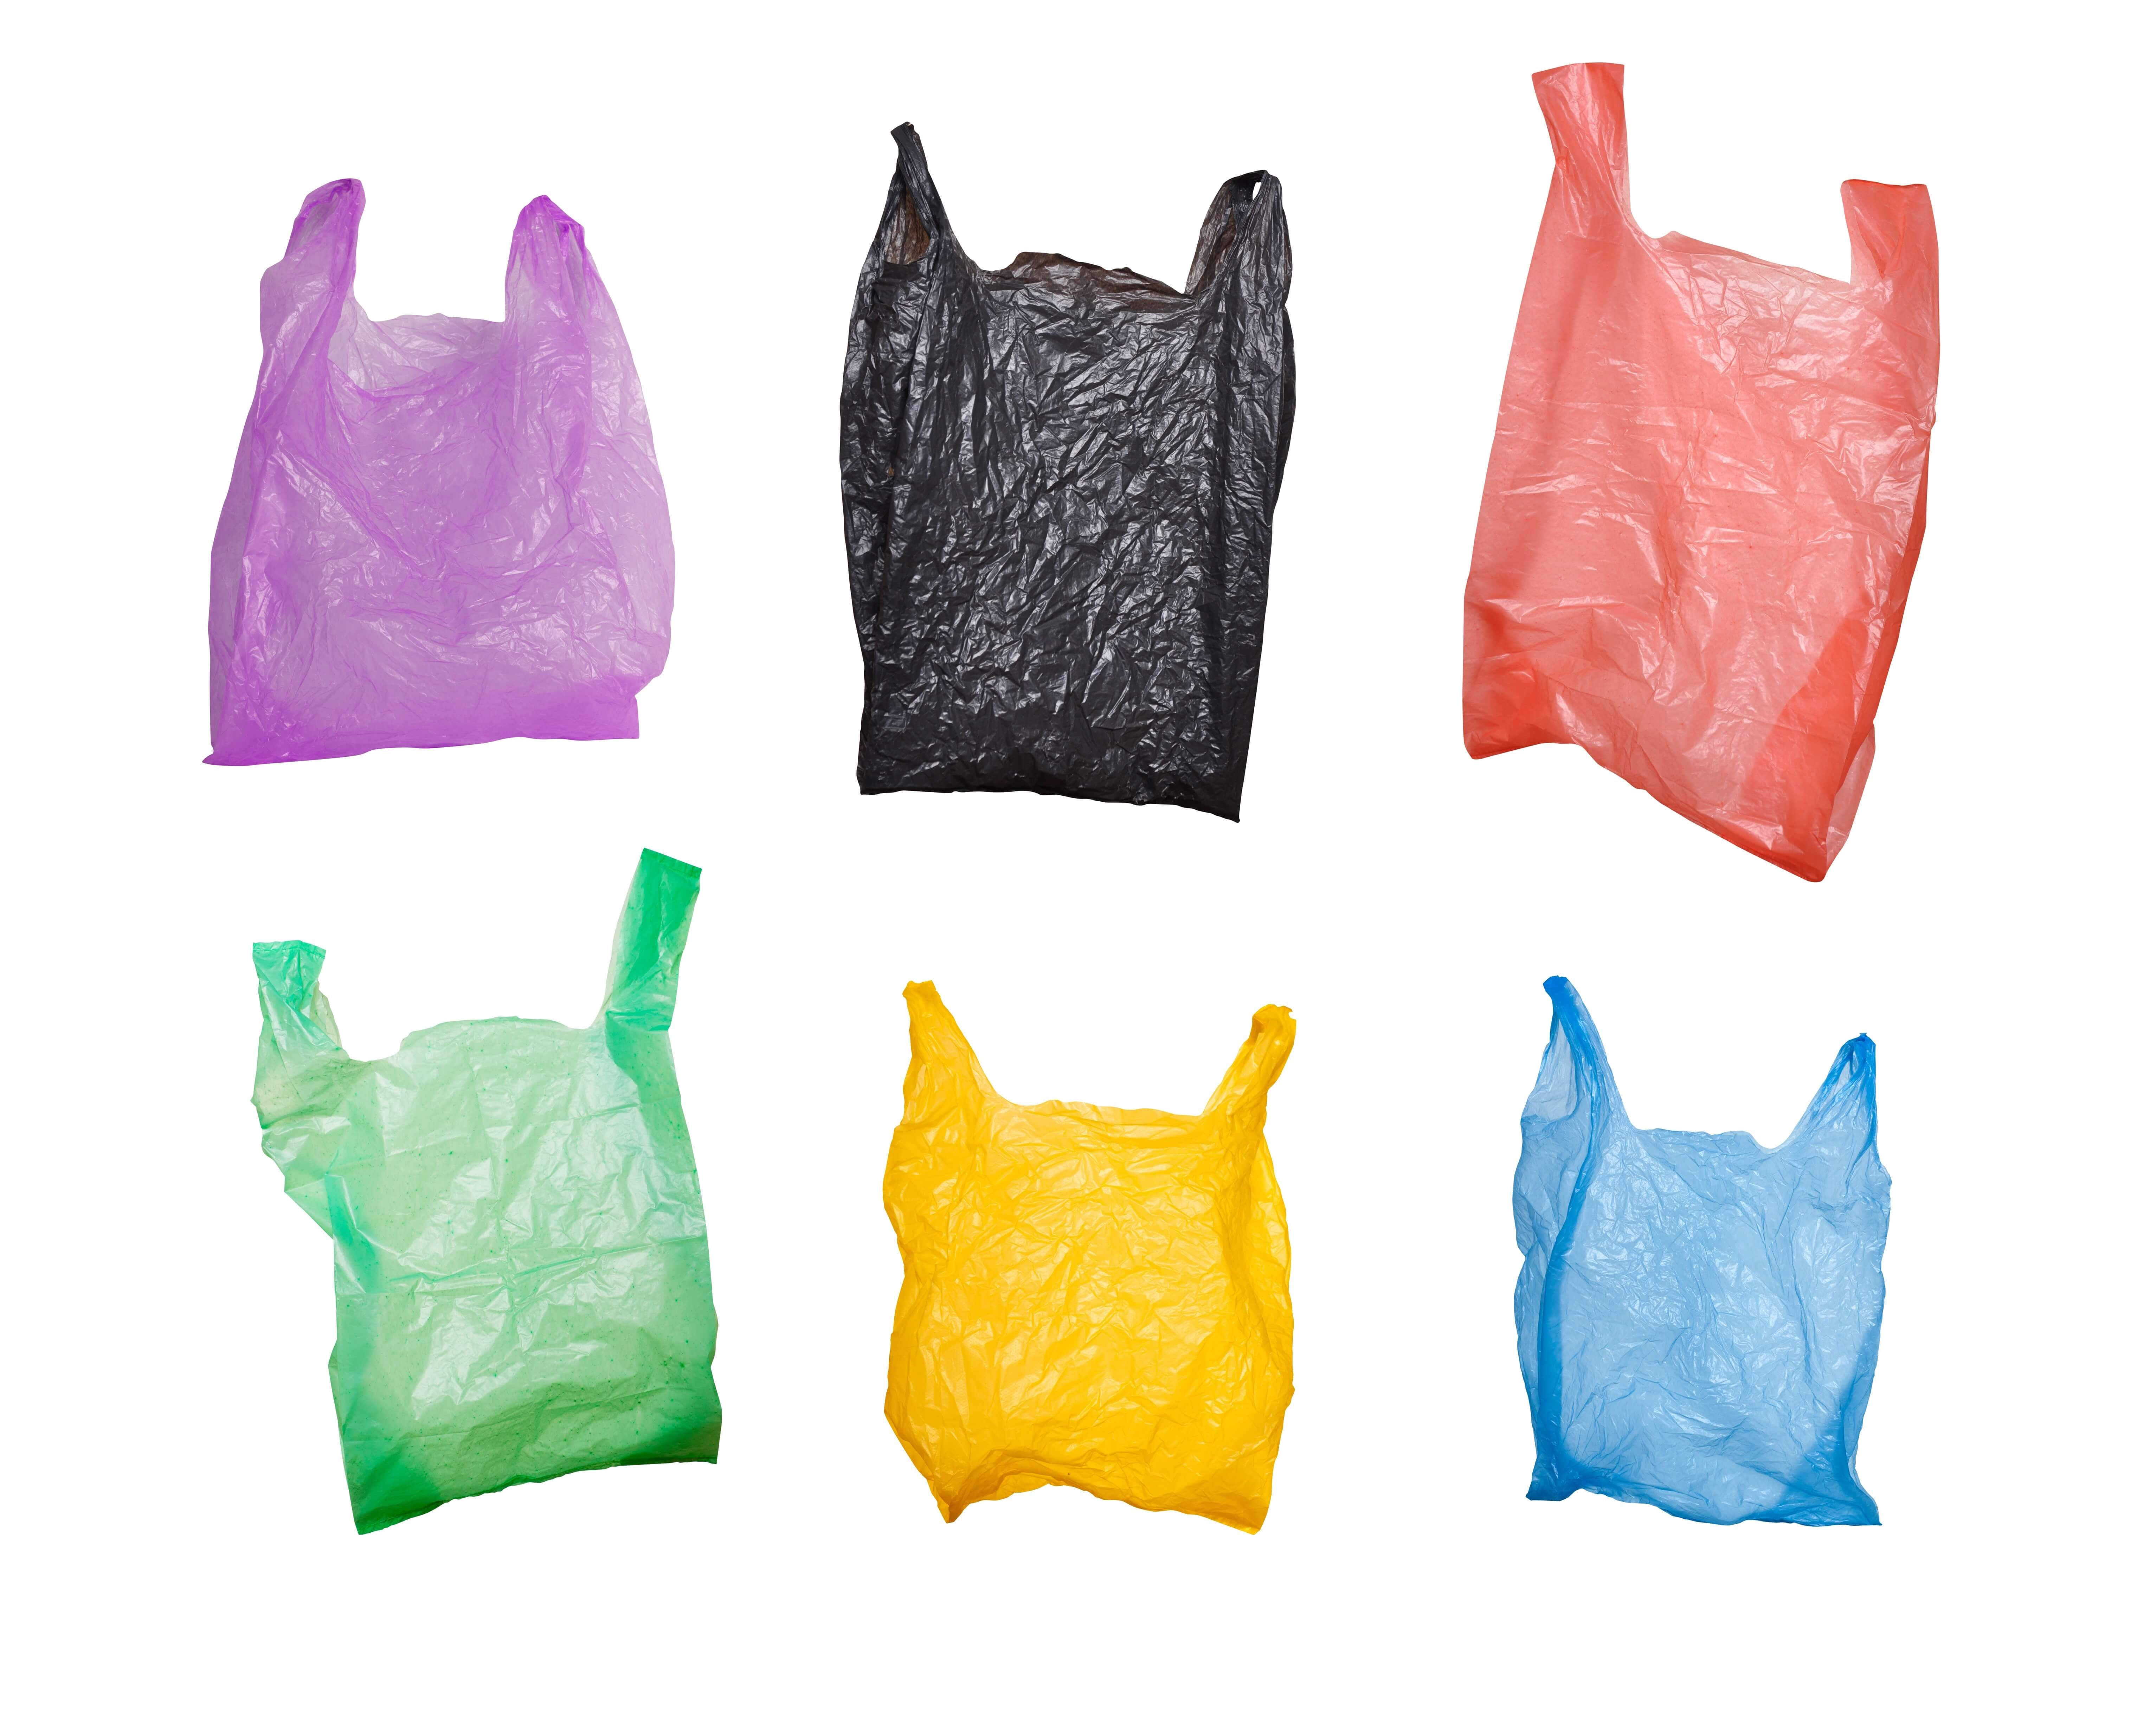 Why Is Plastic Bad for the Environment? - FamilyEducation